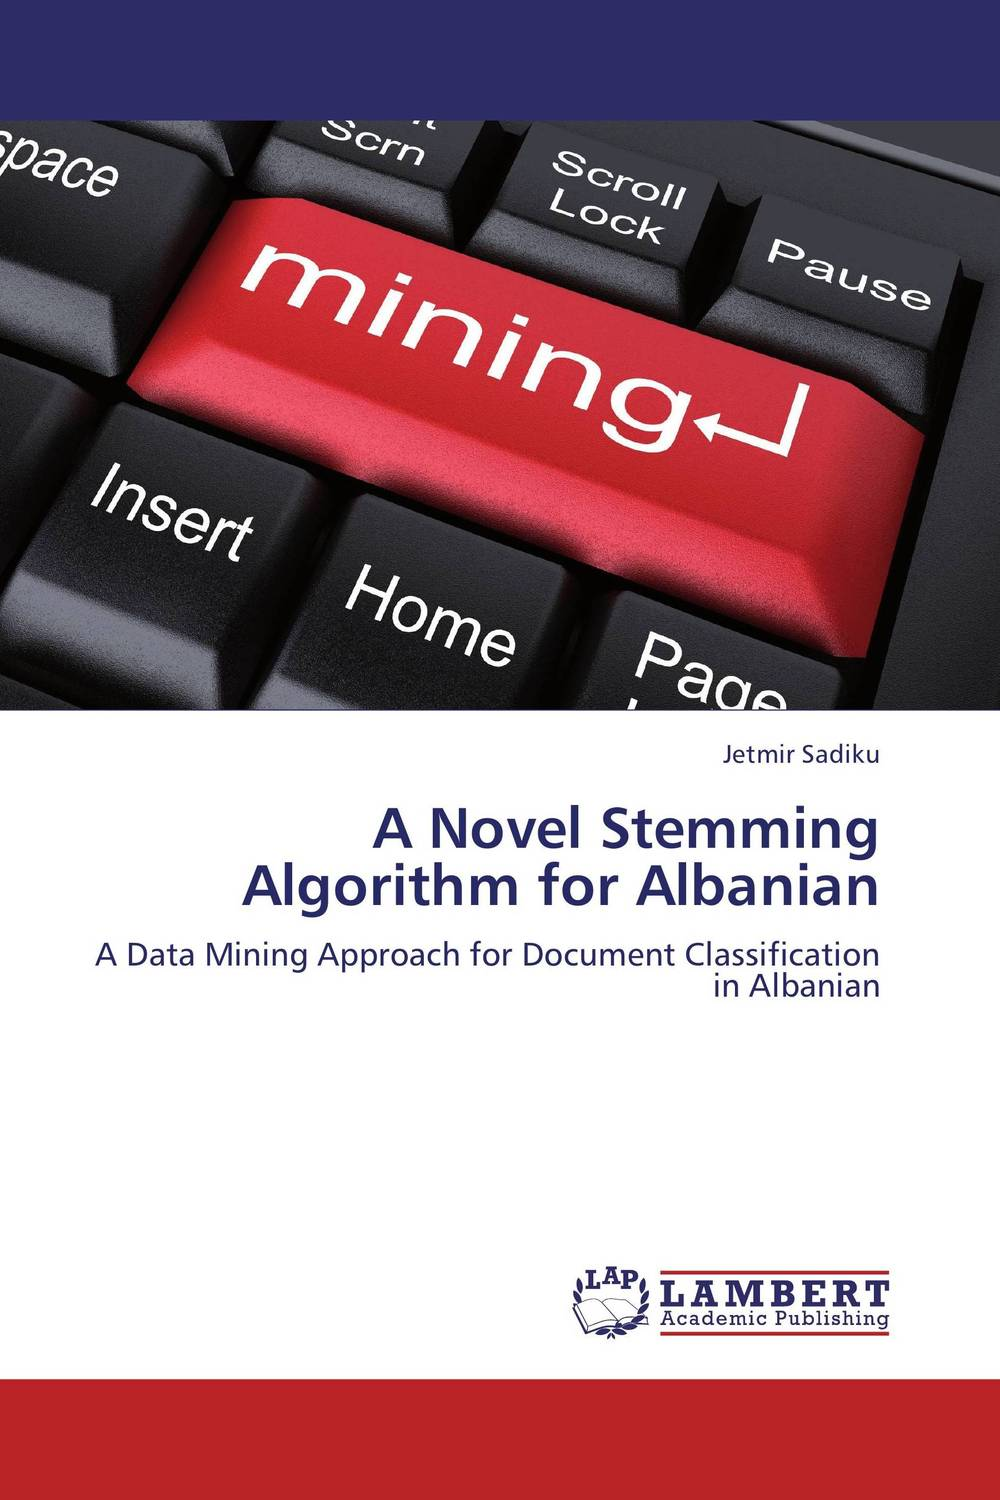 A Novel Stemming Algorithm for Albanian belousov a security features of banknotes and other documents methods of authentication manual денежные билеты бланки ценных бумаг и документов